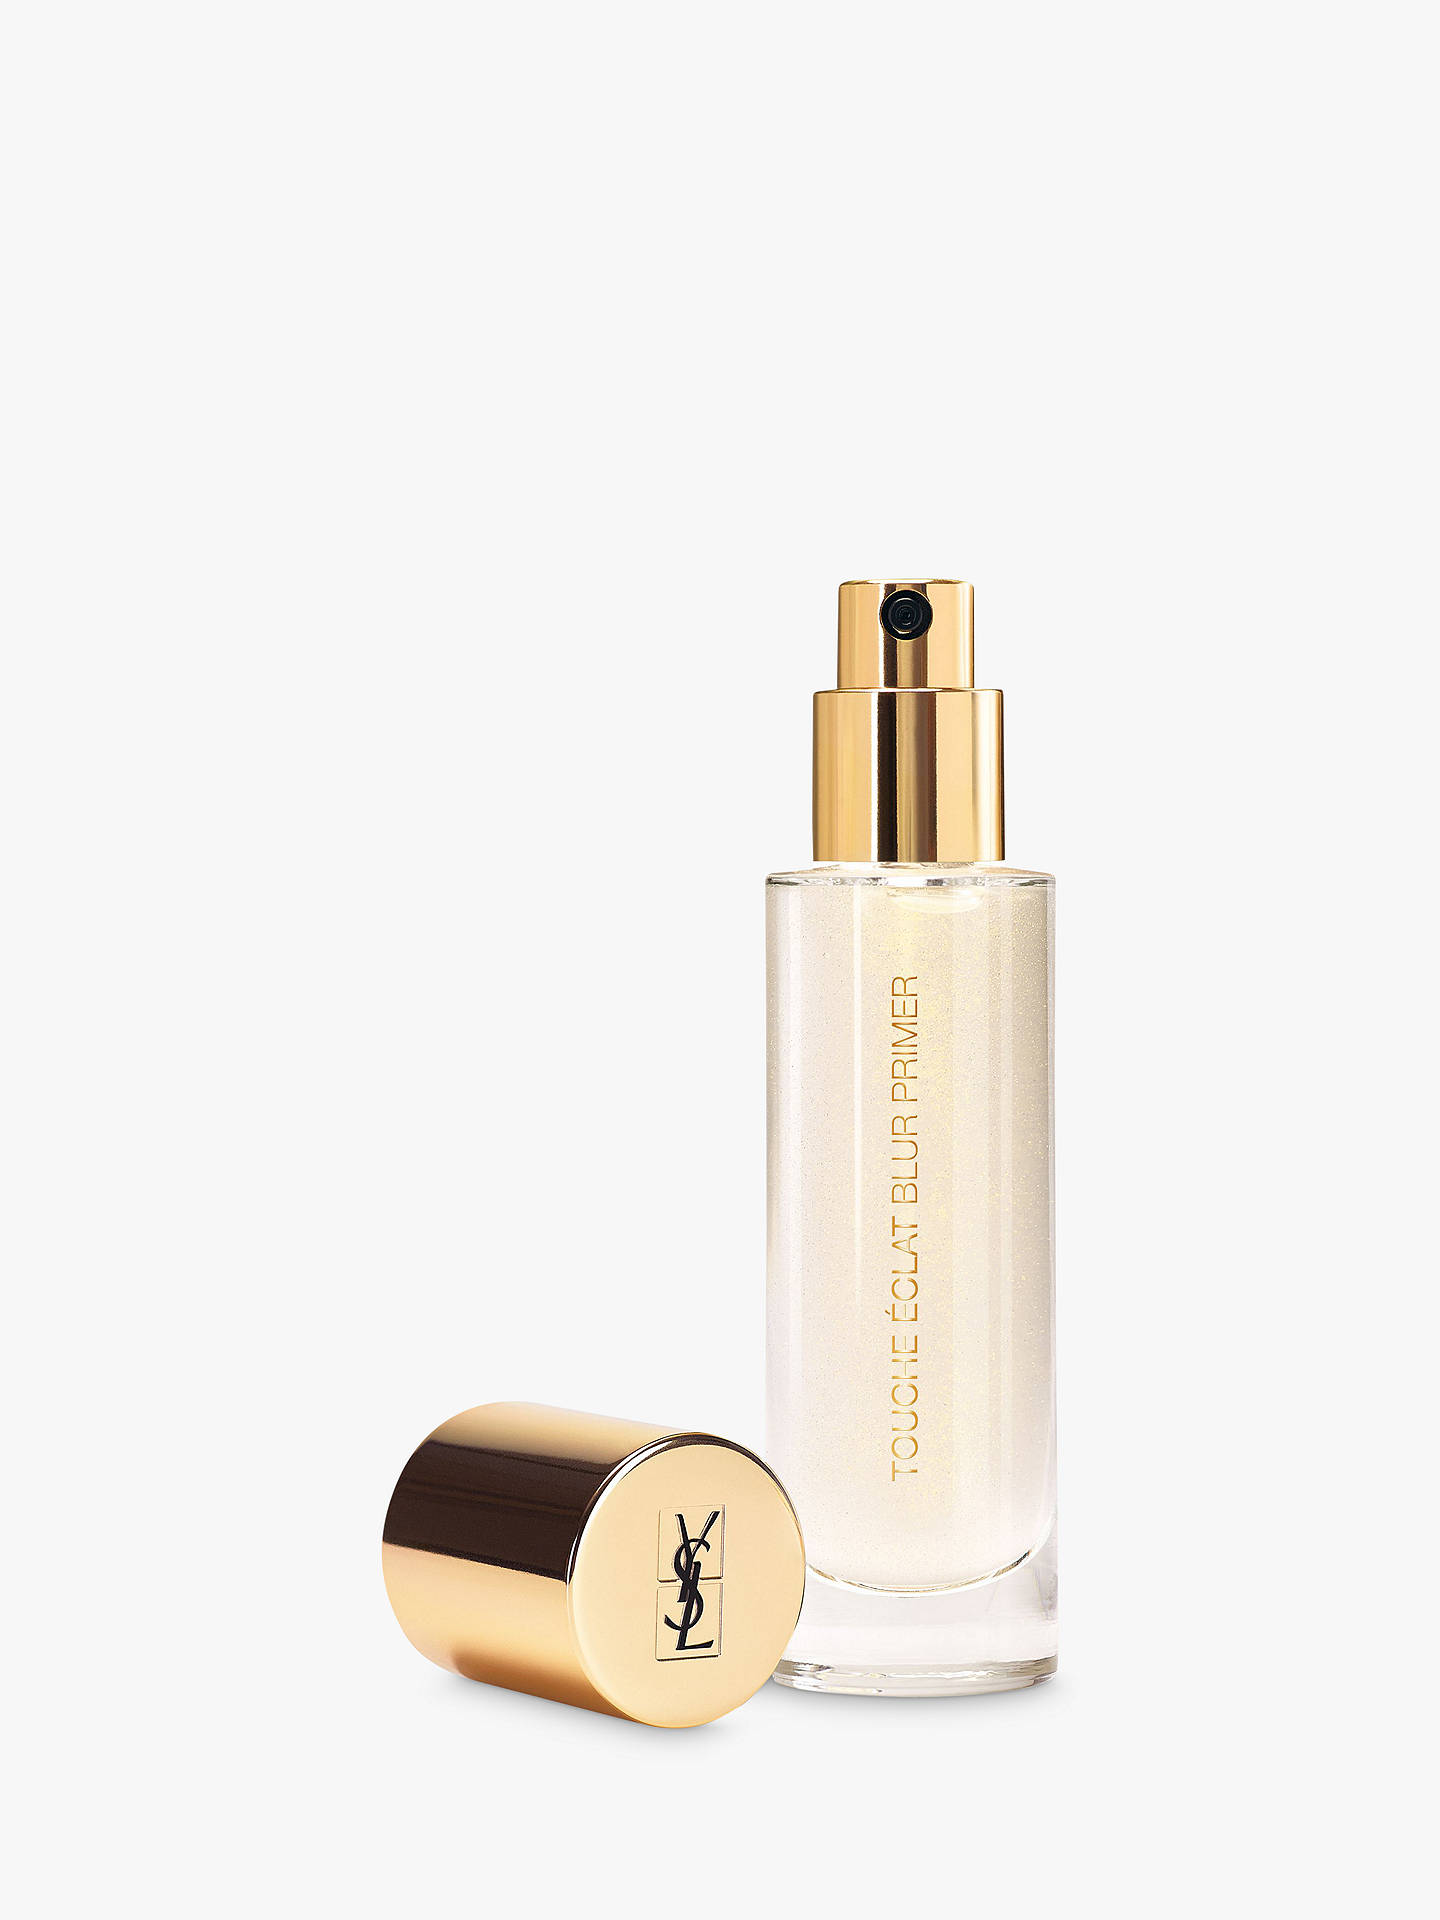 BuyYves Saint Laurent Touche Éclat Blur Primer, 30ml Online at johnlewis.com